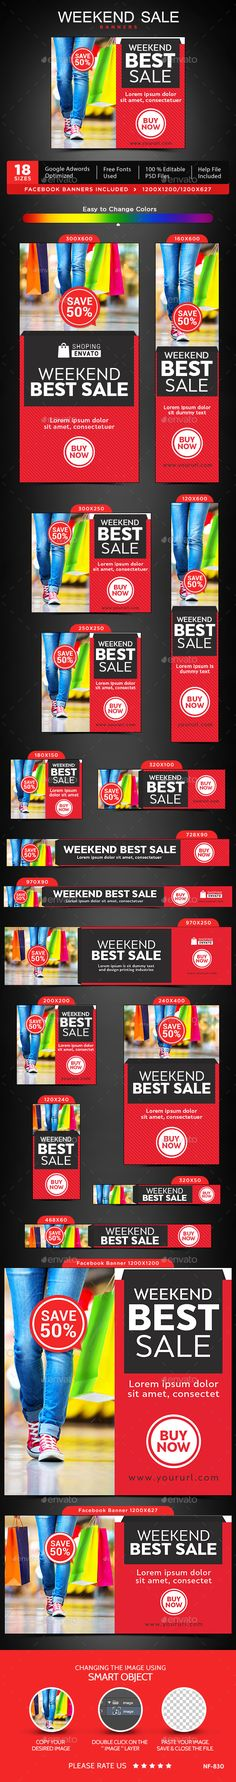 Weekend Sale Banners Template PSD #design #ads #promote Download: http://graphicriver.net/item/weekend-sale-banners/13845567?ref=ksioks